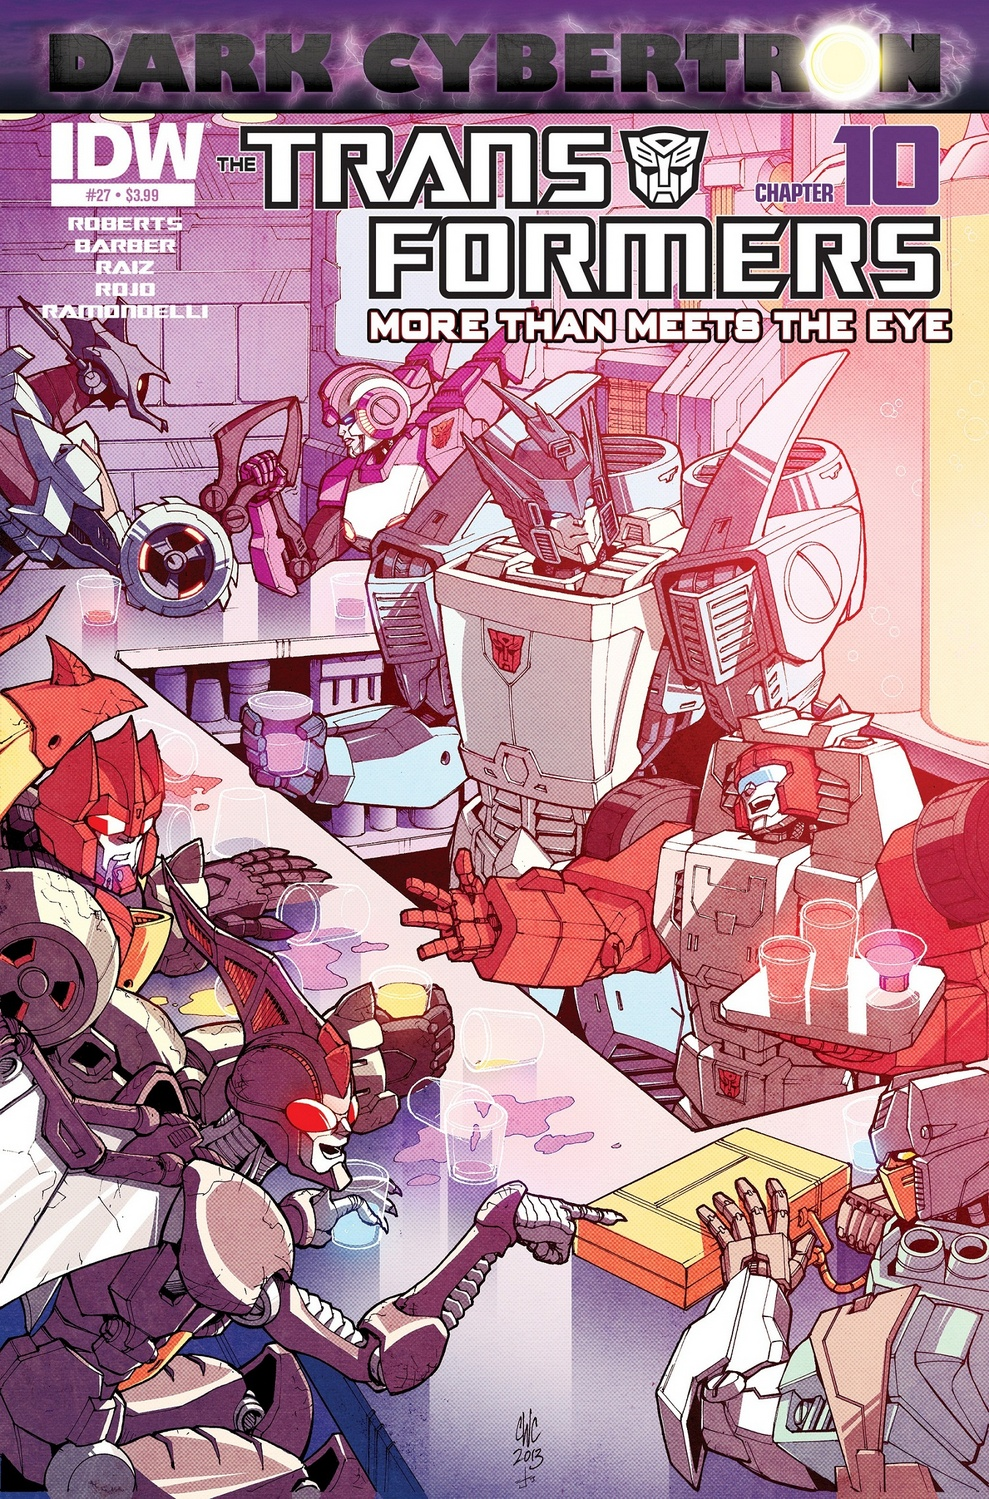 transformers-comics-more-than-meets-the-eye-issue-27-cover-a_1392299536